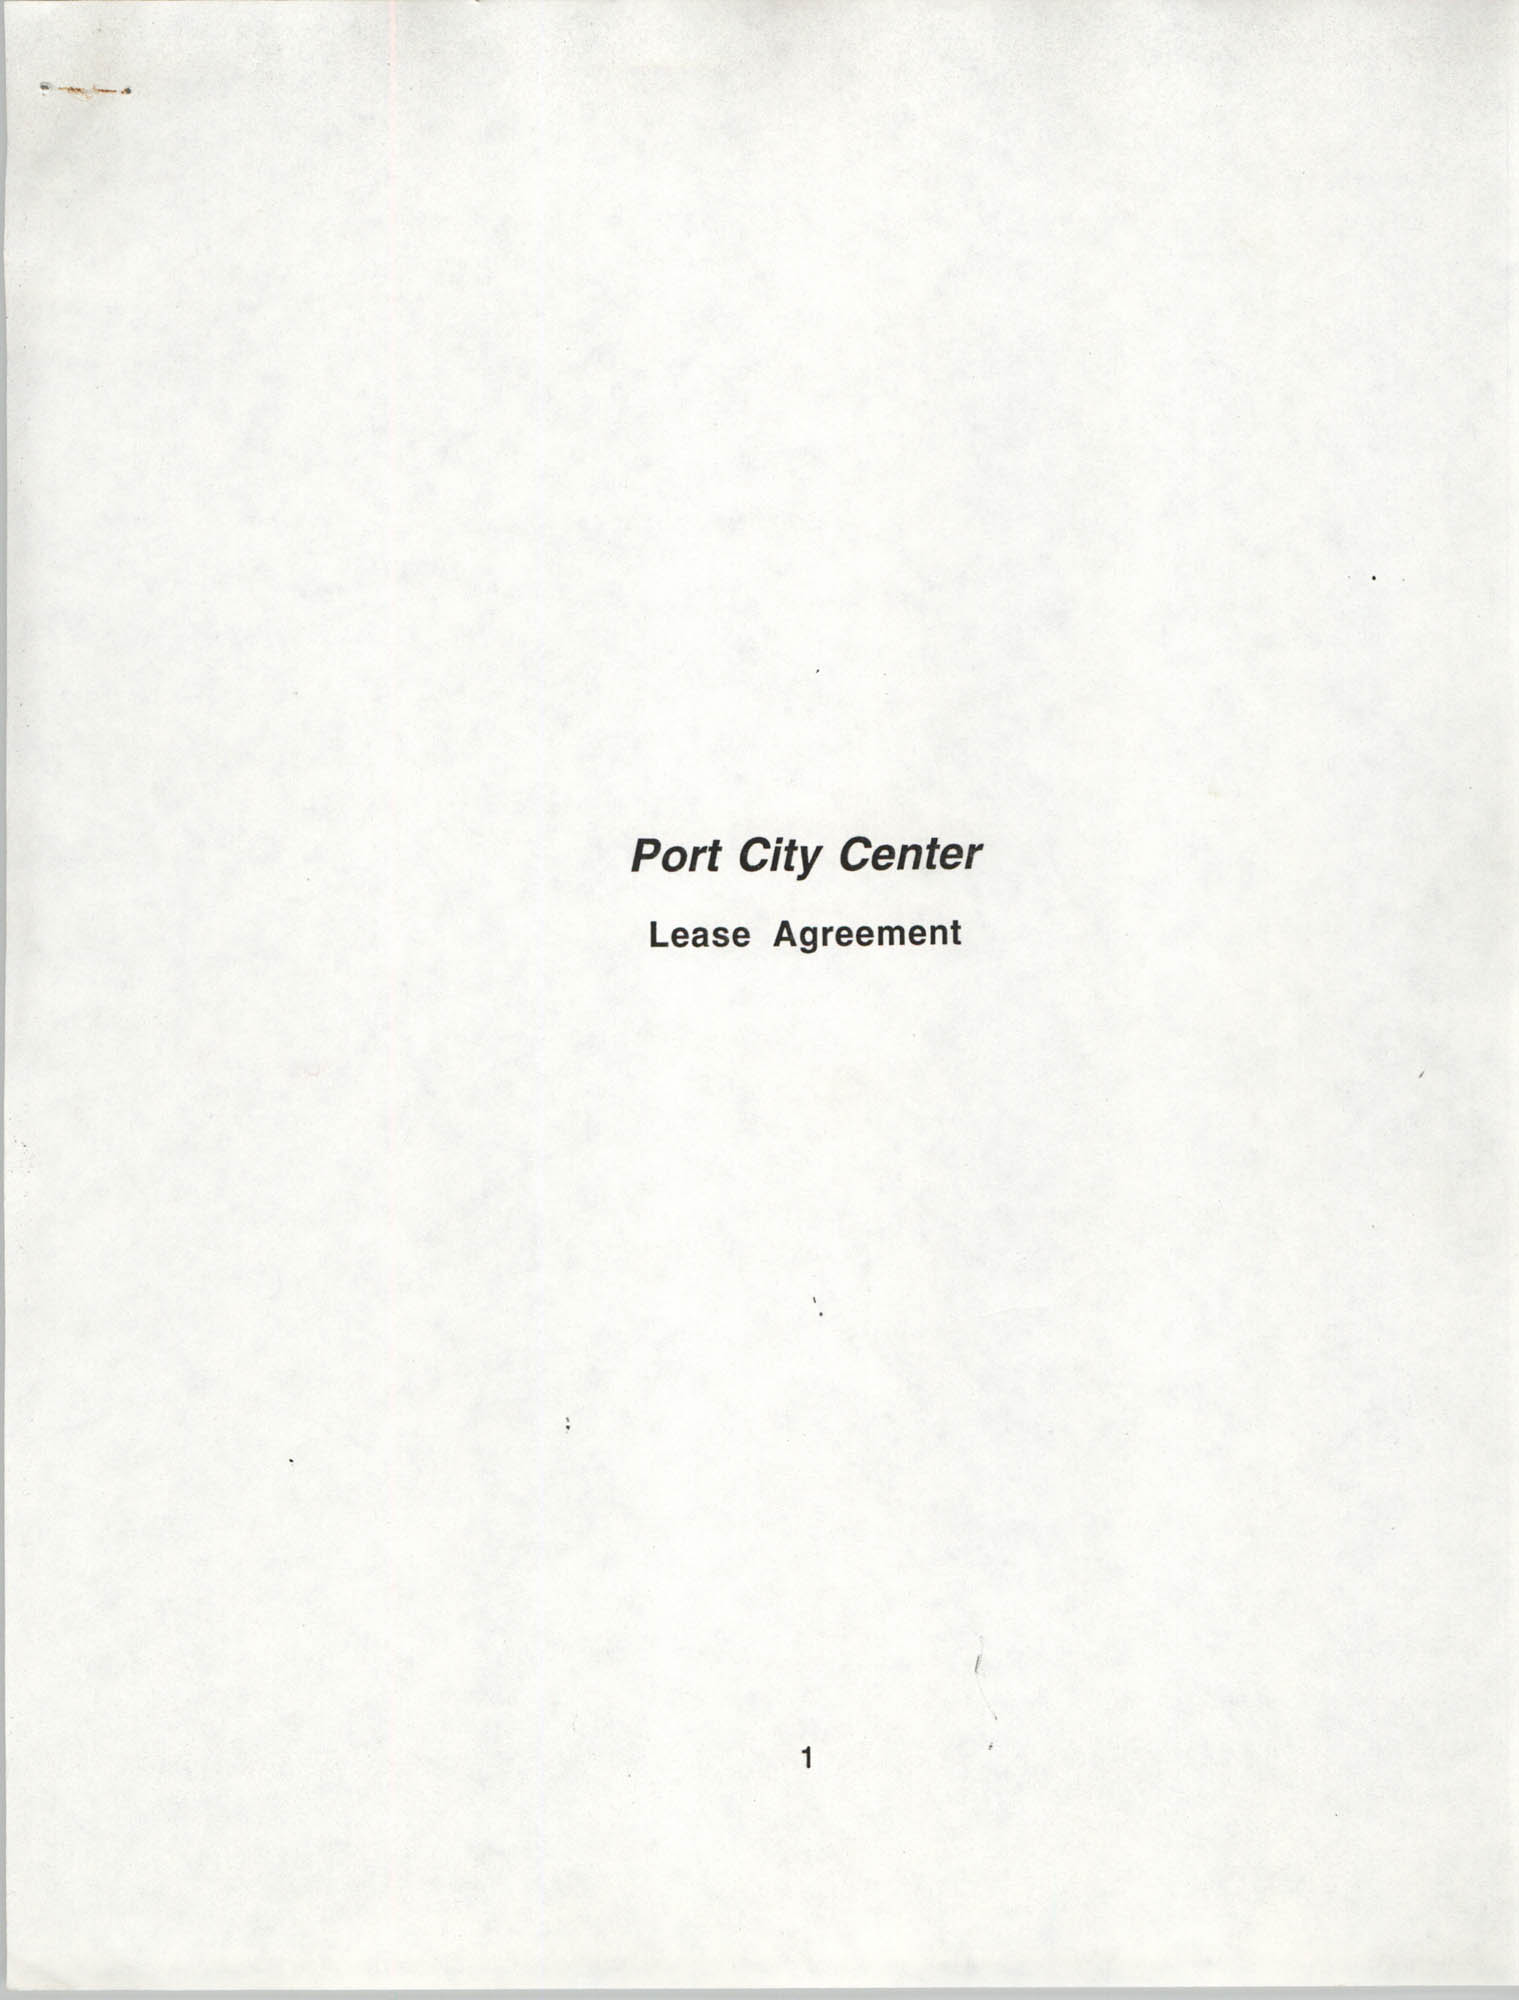 Charleston Branch of the NAACP Leasing Agreement, July 1994 to June 1995